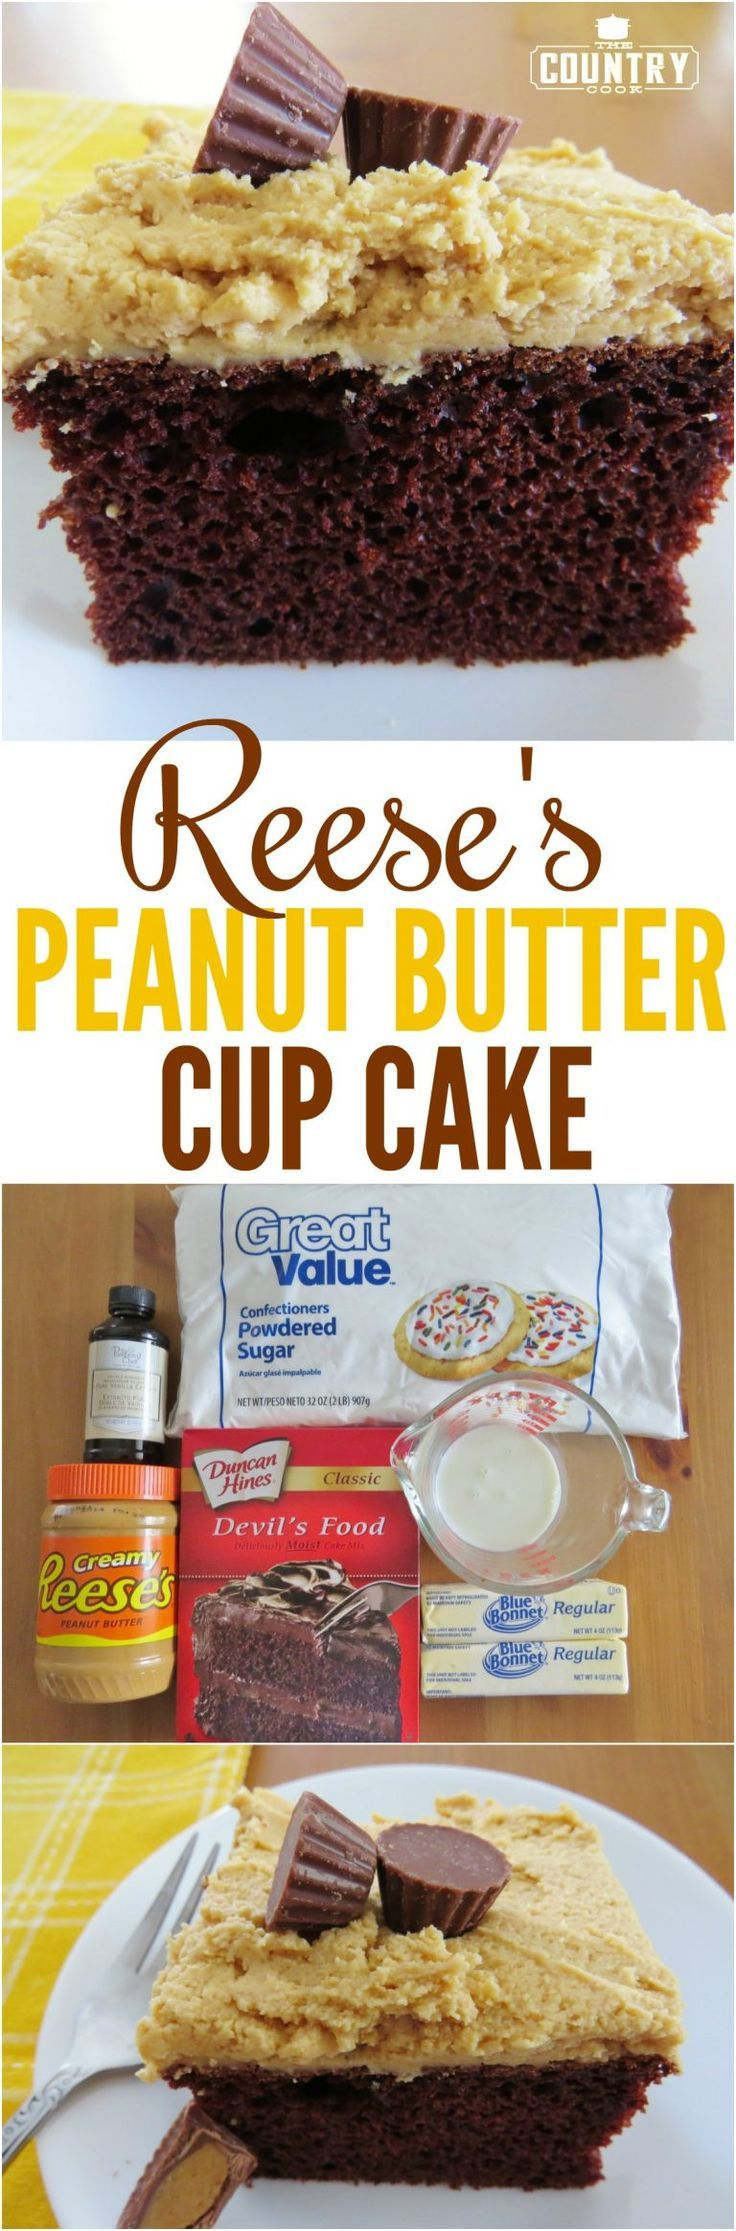 Reese's Peanut Butter Cup Cake recipe from The Country Cook